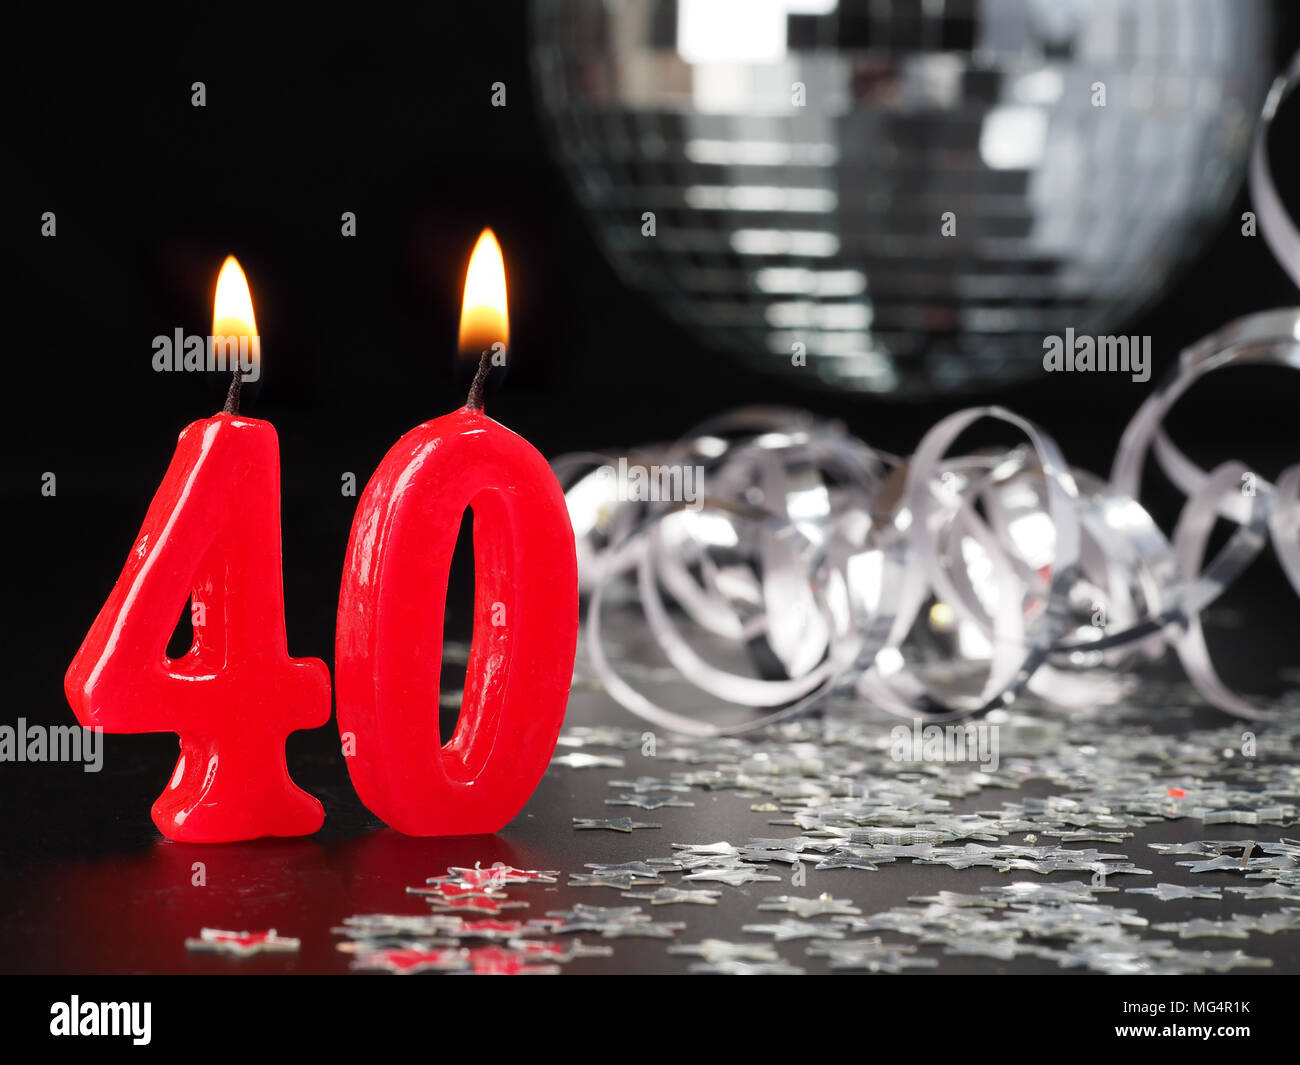 N 40 Bougies Rouges Montrant Abstract Background Pour Anniversaire